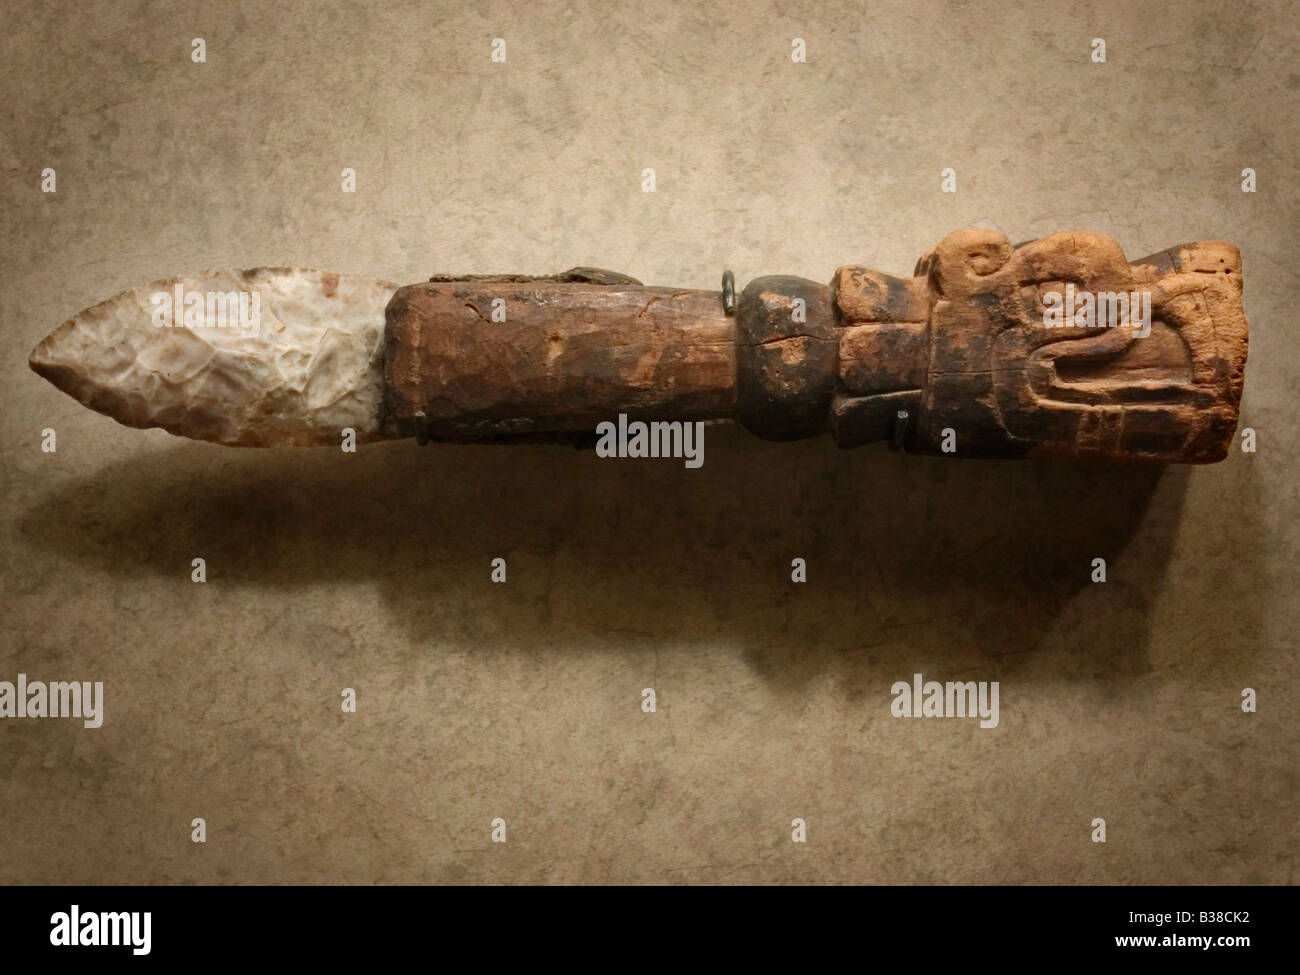 Ceremonial flint Aztec / Mexica sacrificial knife with carved wooden handle at the National Museum of Anthropology - Stock Image